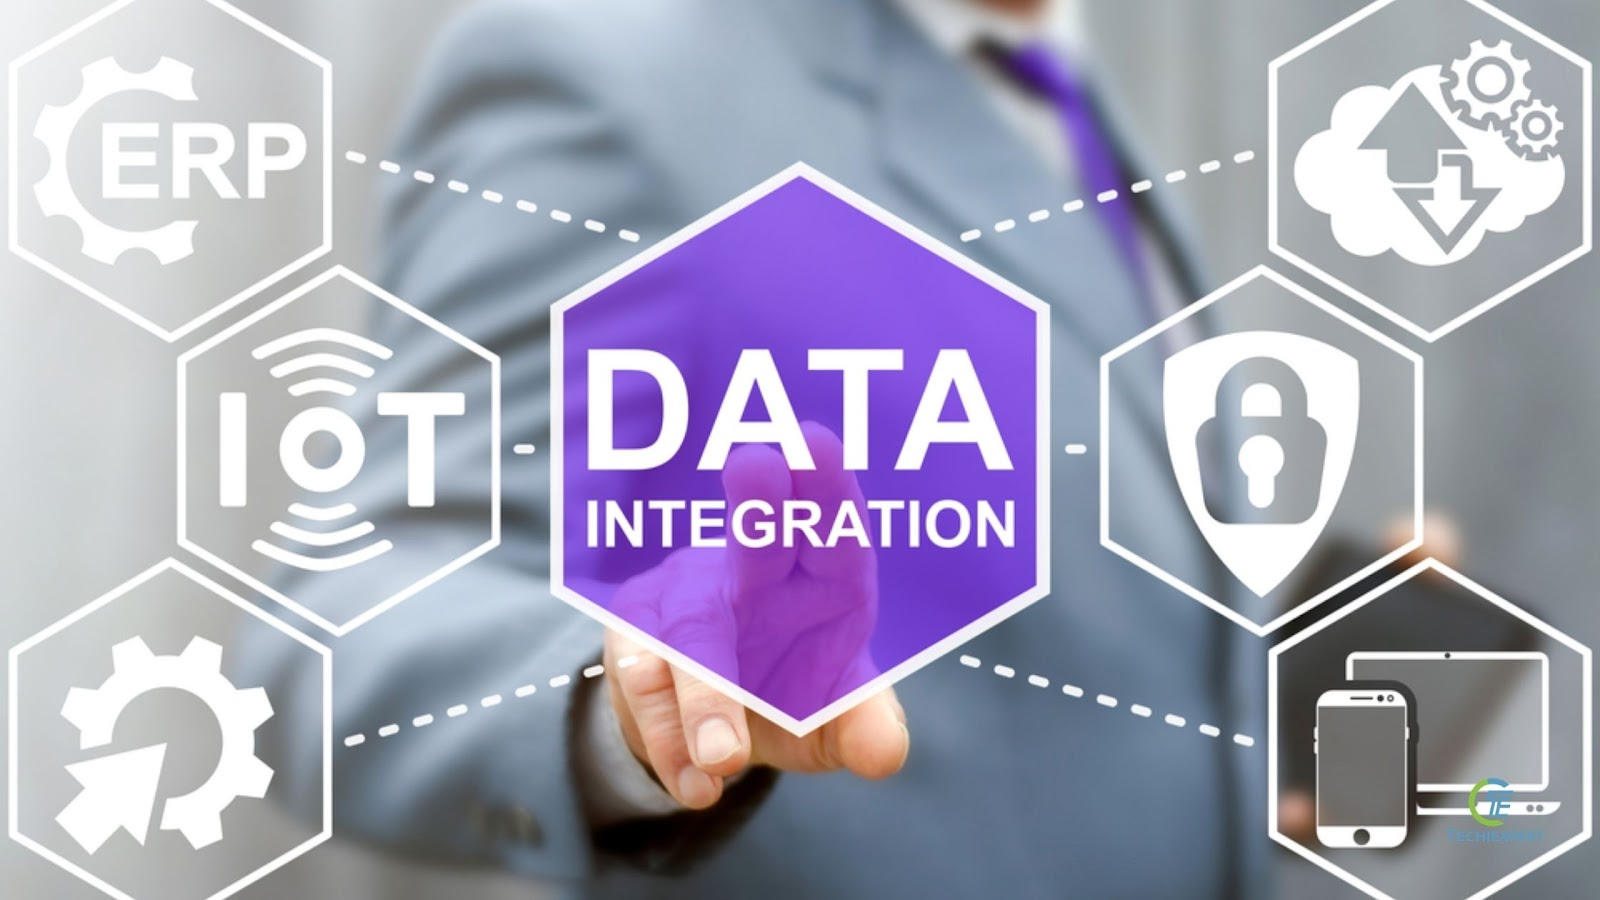 Integrating disparate data sources